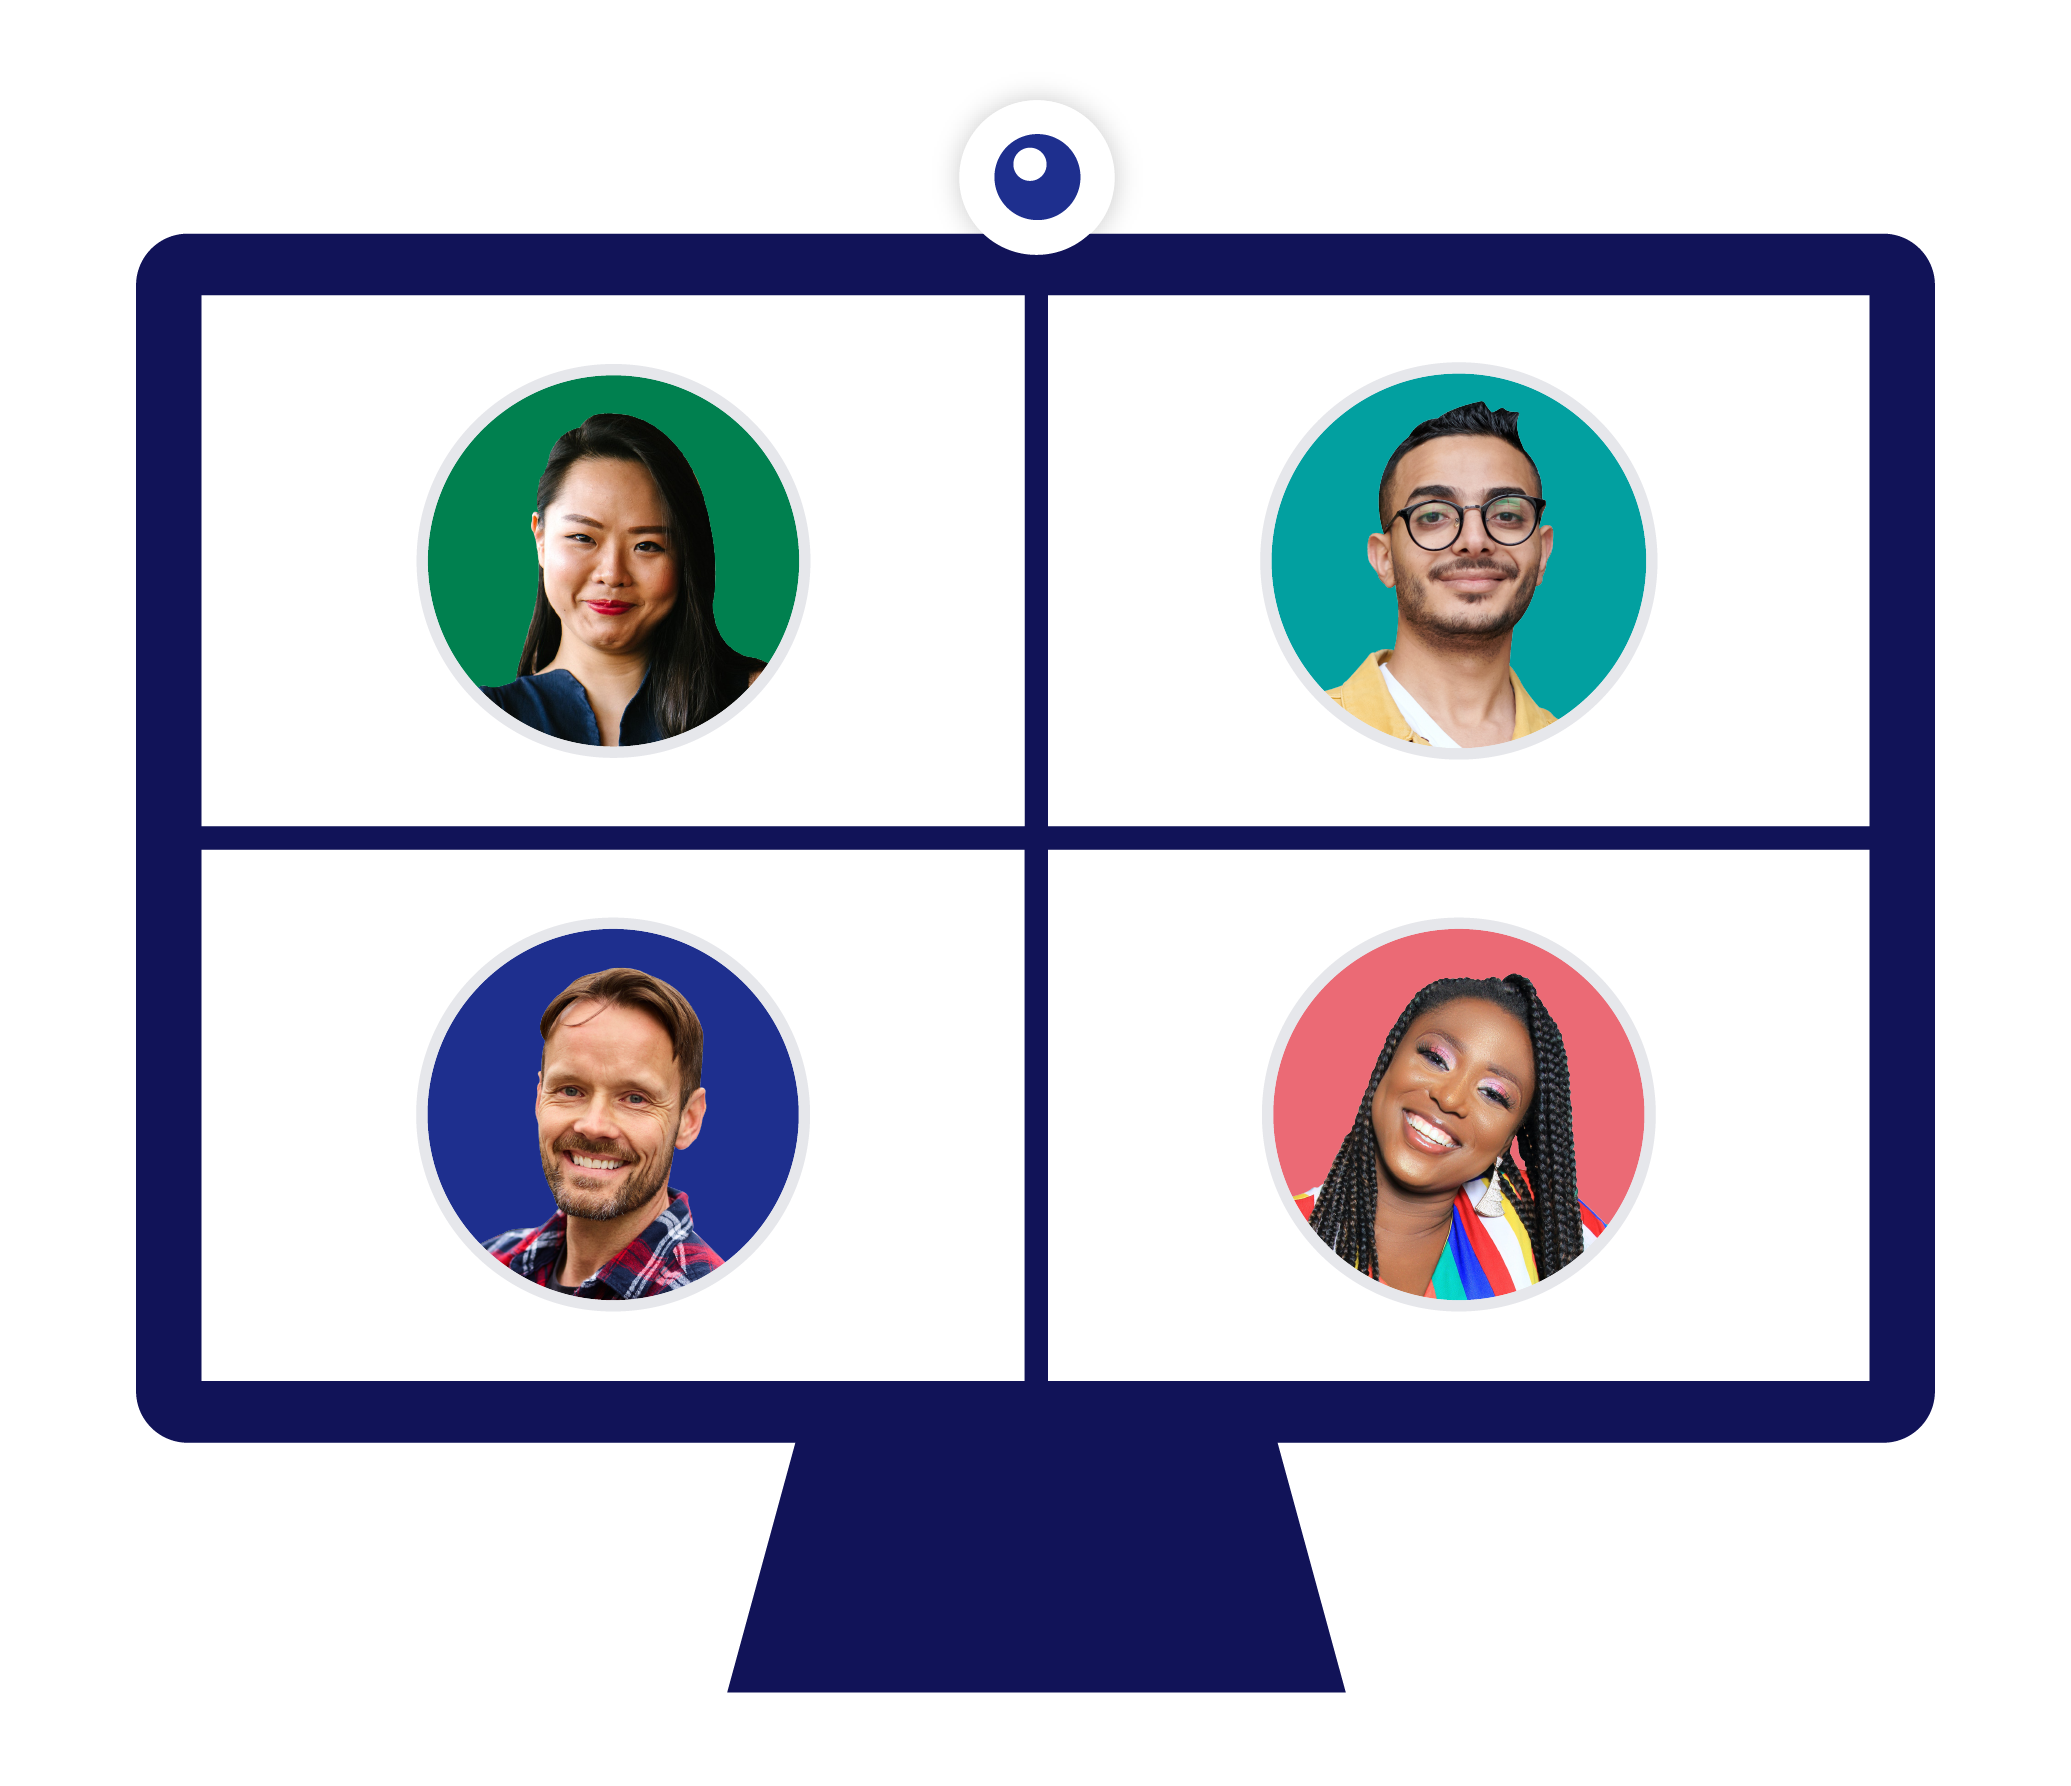 An illustration of a computer screen with a webcam at the top. The screen is split into fourths to show all members of a video call. On each section, there is an avatar for each member of the call. There are two women and two men.